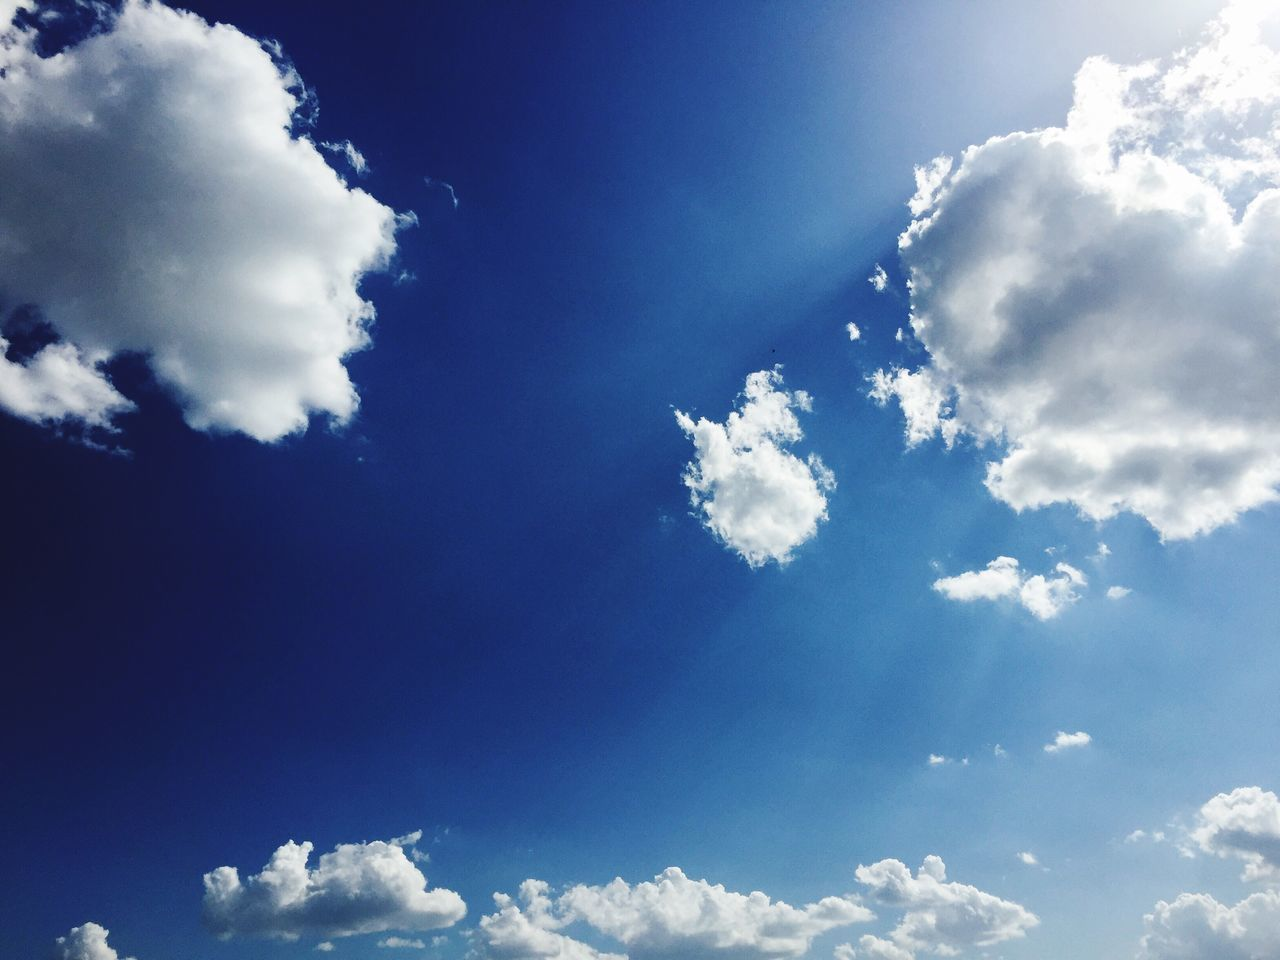 Cloud - Sky Sky Beauty In Nature Low Angle View Nature Blue Backgrounds Sky Only Cloudscape White Color Day Tranquility Scenics Full Frame Outdoors